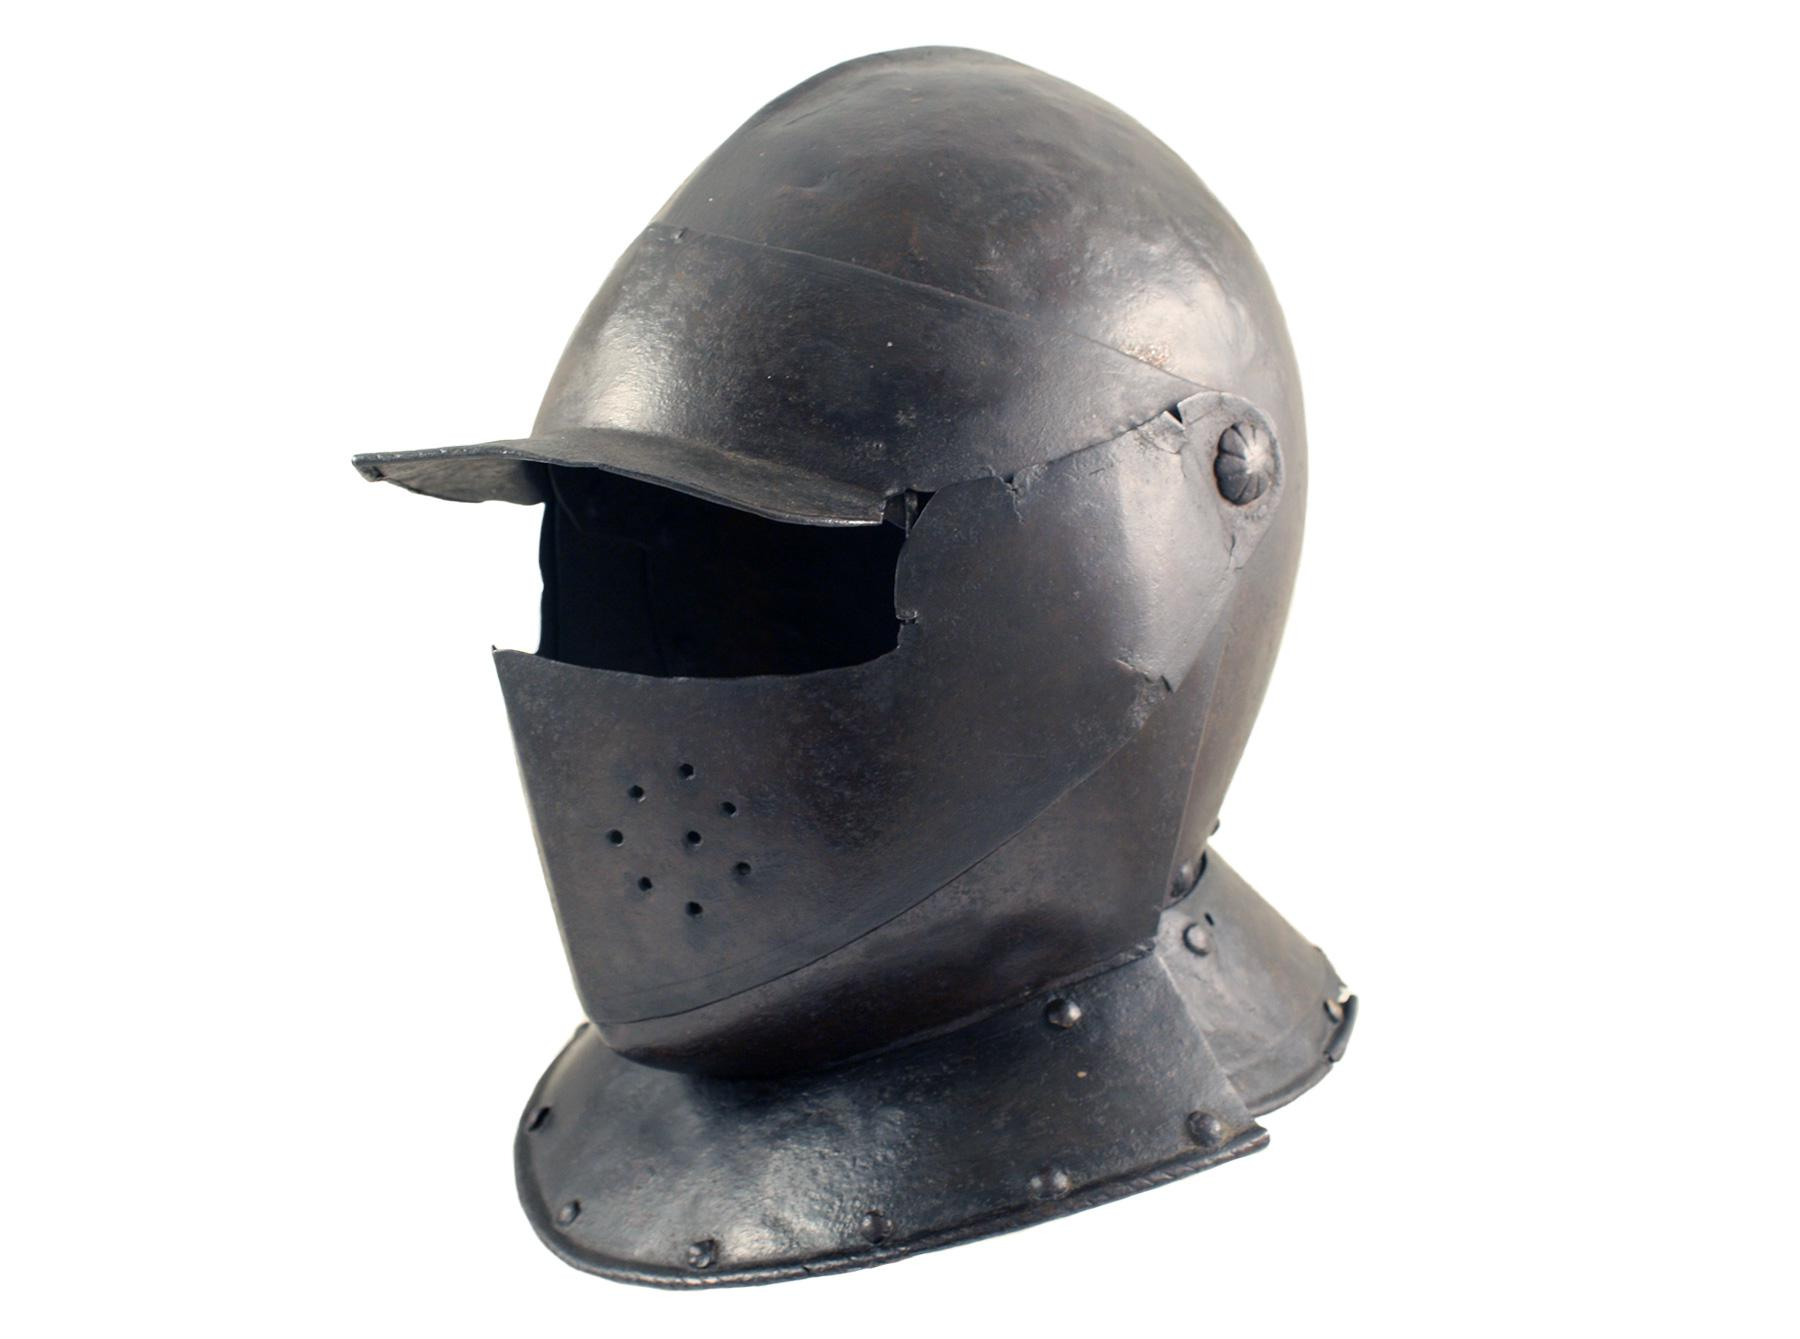 A Close Helmet